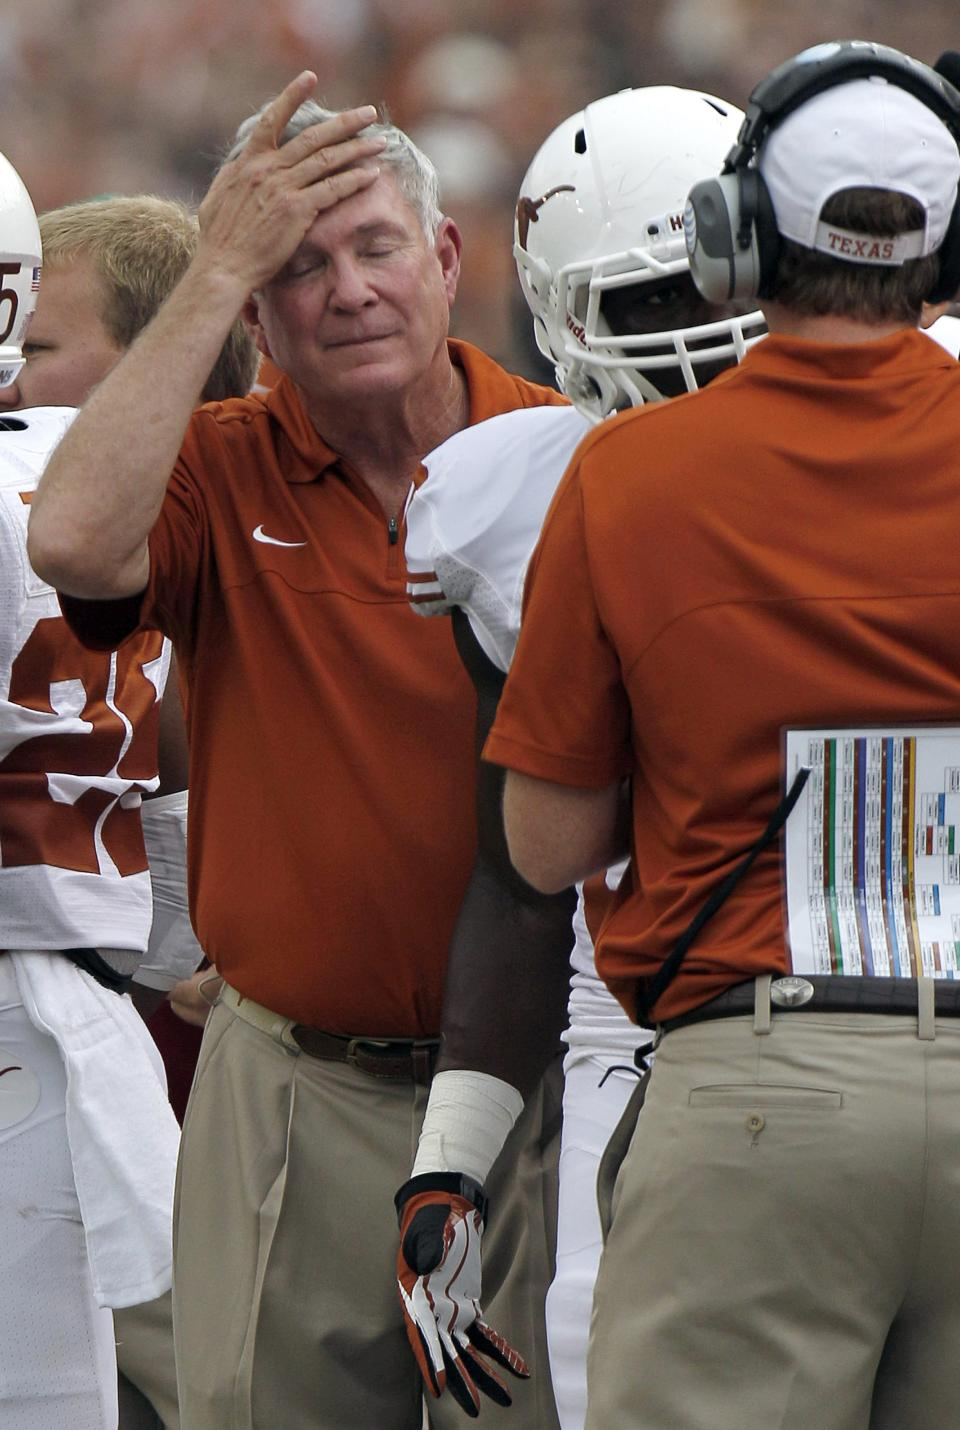 Texas head coach Mack Brown reacts after an interception during the first half of an NCAA college football game against Oklahoma at the Cotton Bowl Saturday, Oct. 13, 2012, in Dallas. (AP Photo/LM Otero)